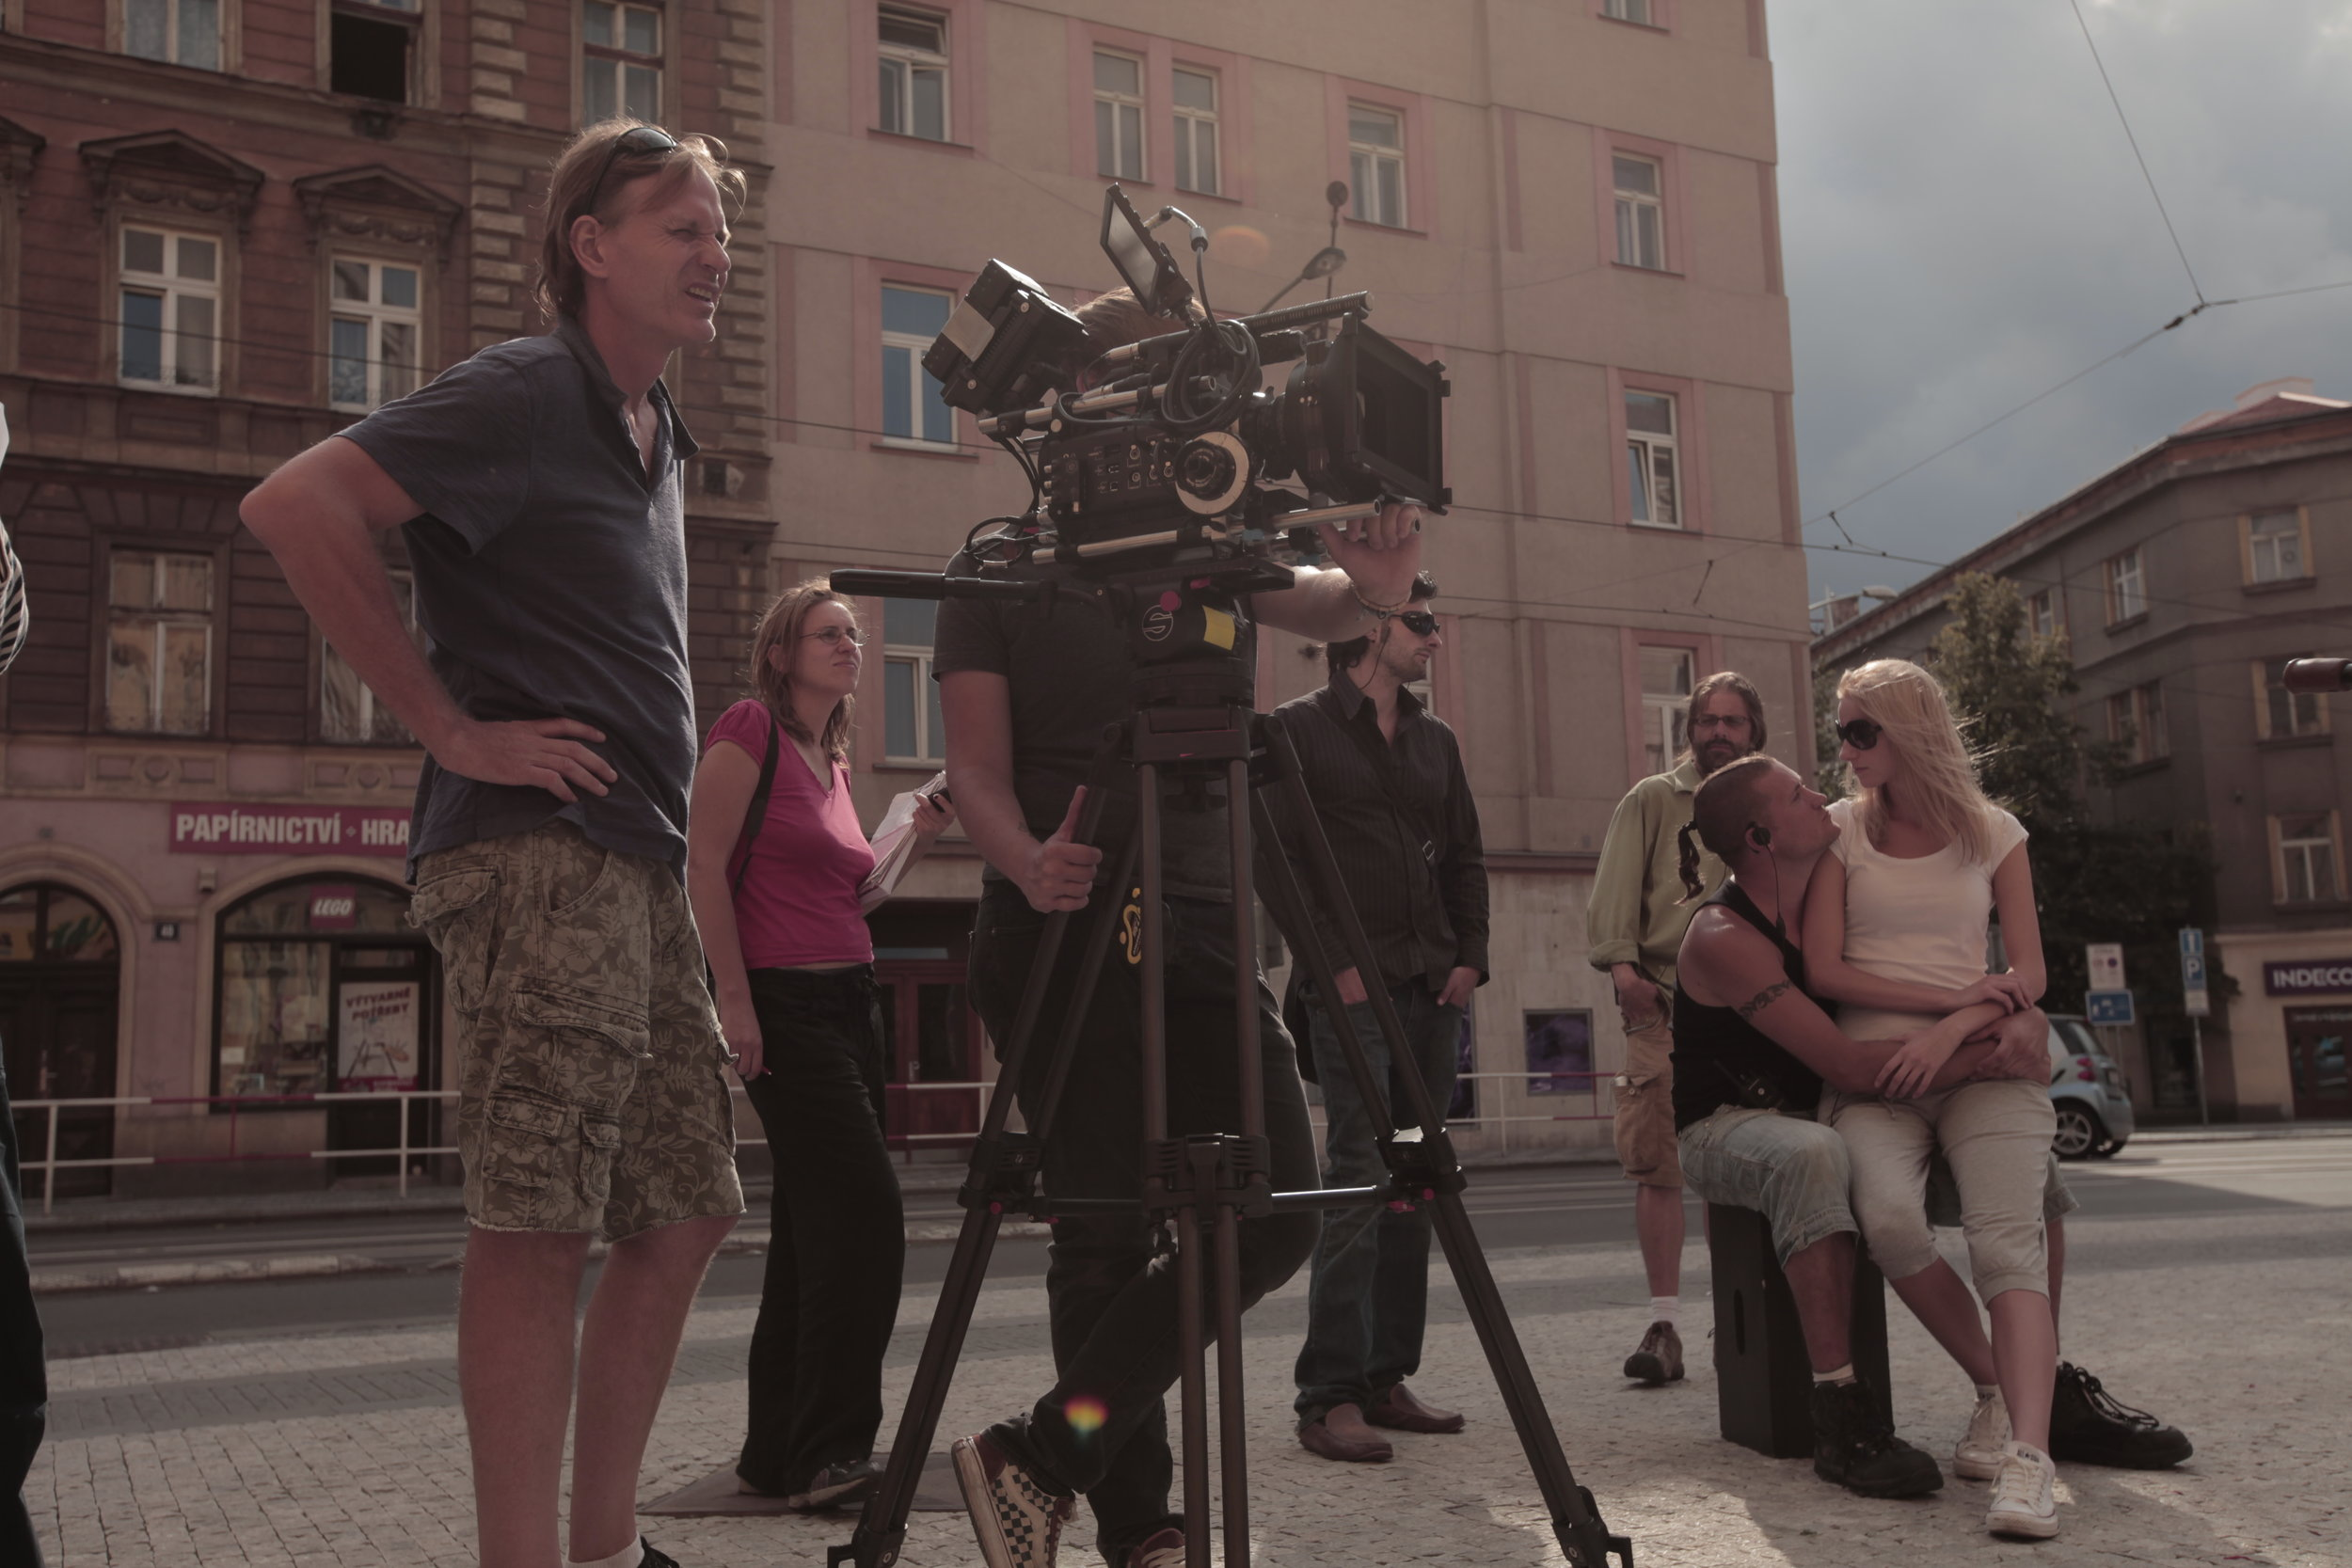 Film crew with the Red Camera